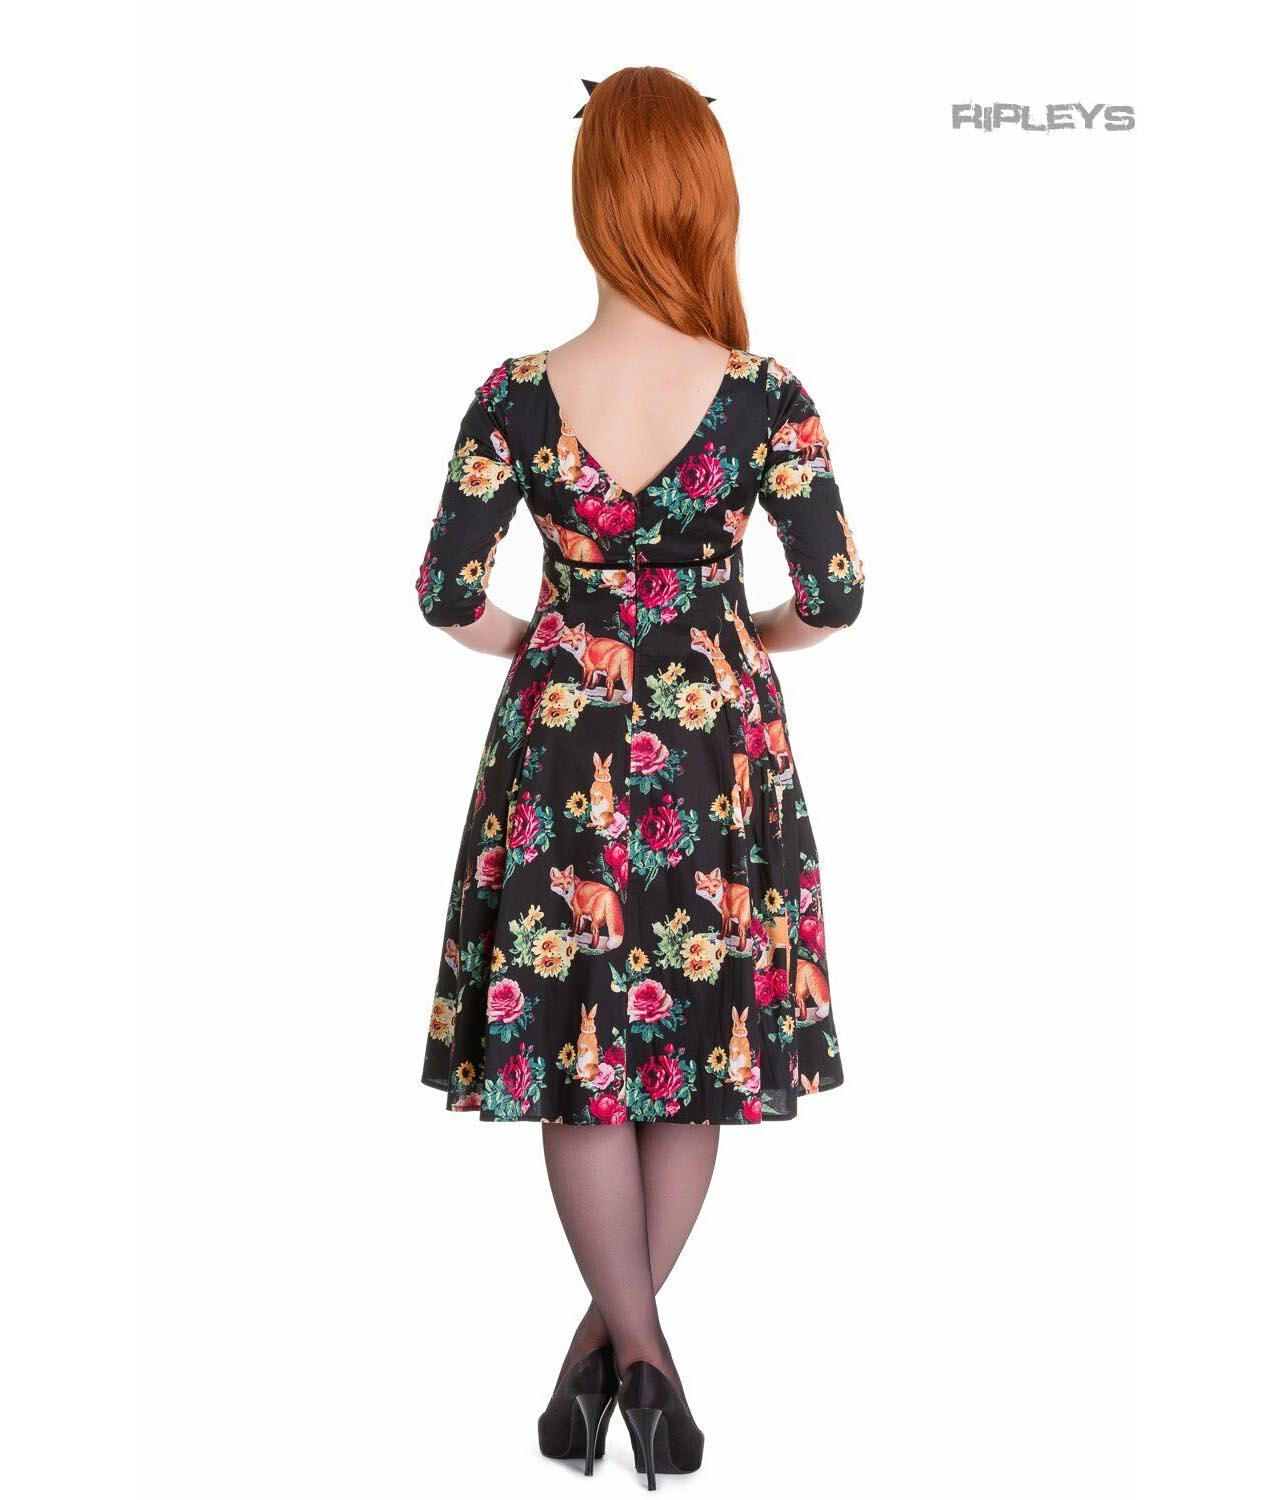 Hell-Bunny-40s-50s-Pin-Up-Vintage-Dress-HERMELINE-Woodland-Fox-All-Sizes thumbnail 4